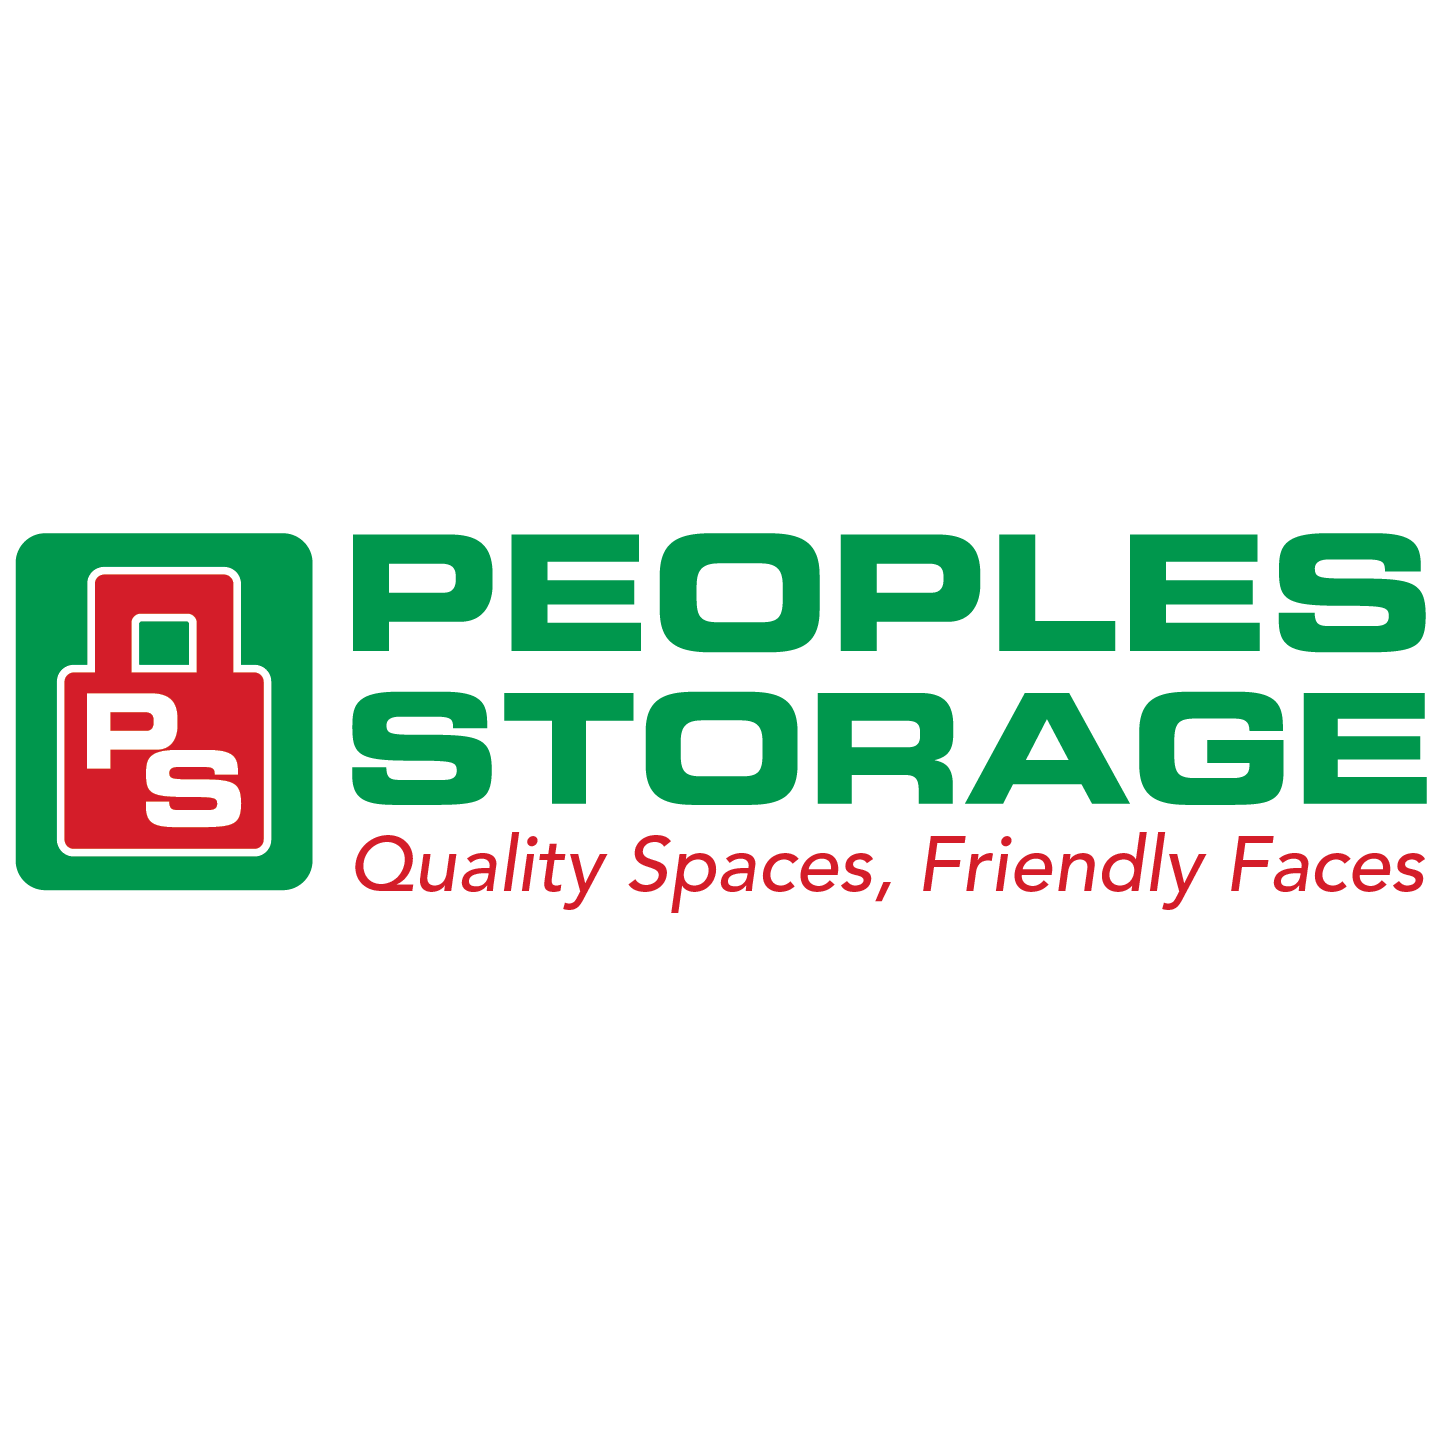 Peoples Storage Kenmore image 4